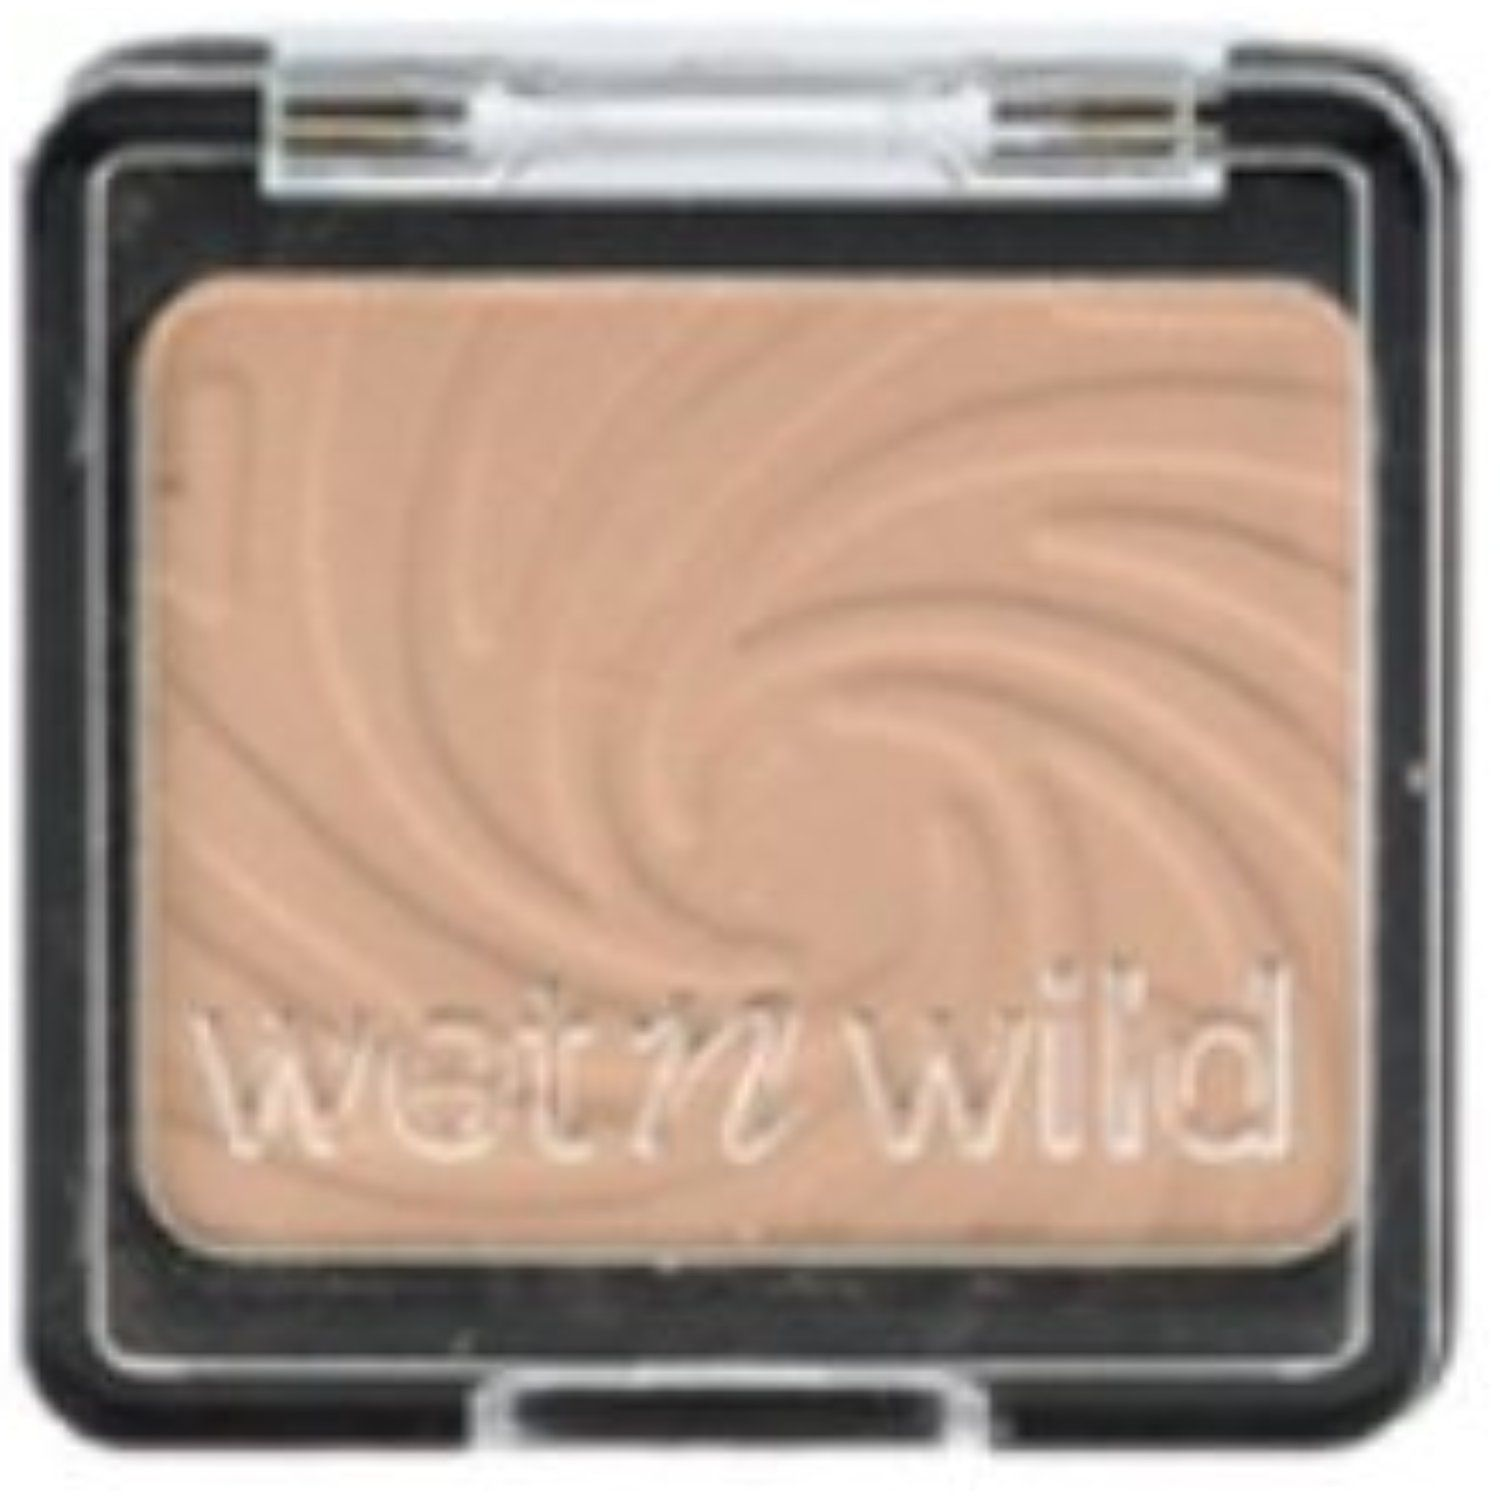 6 Pack Wet N Wild Color Icon Eyeshadow Single Brulee Be Sure To Check Out This Awesome Product This Is An Affiliate Link Ey Wet N Wild Eyeshadow Wet